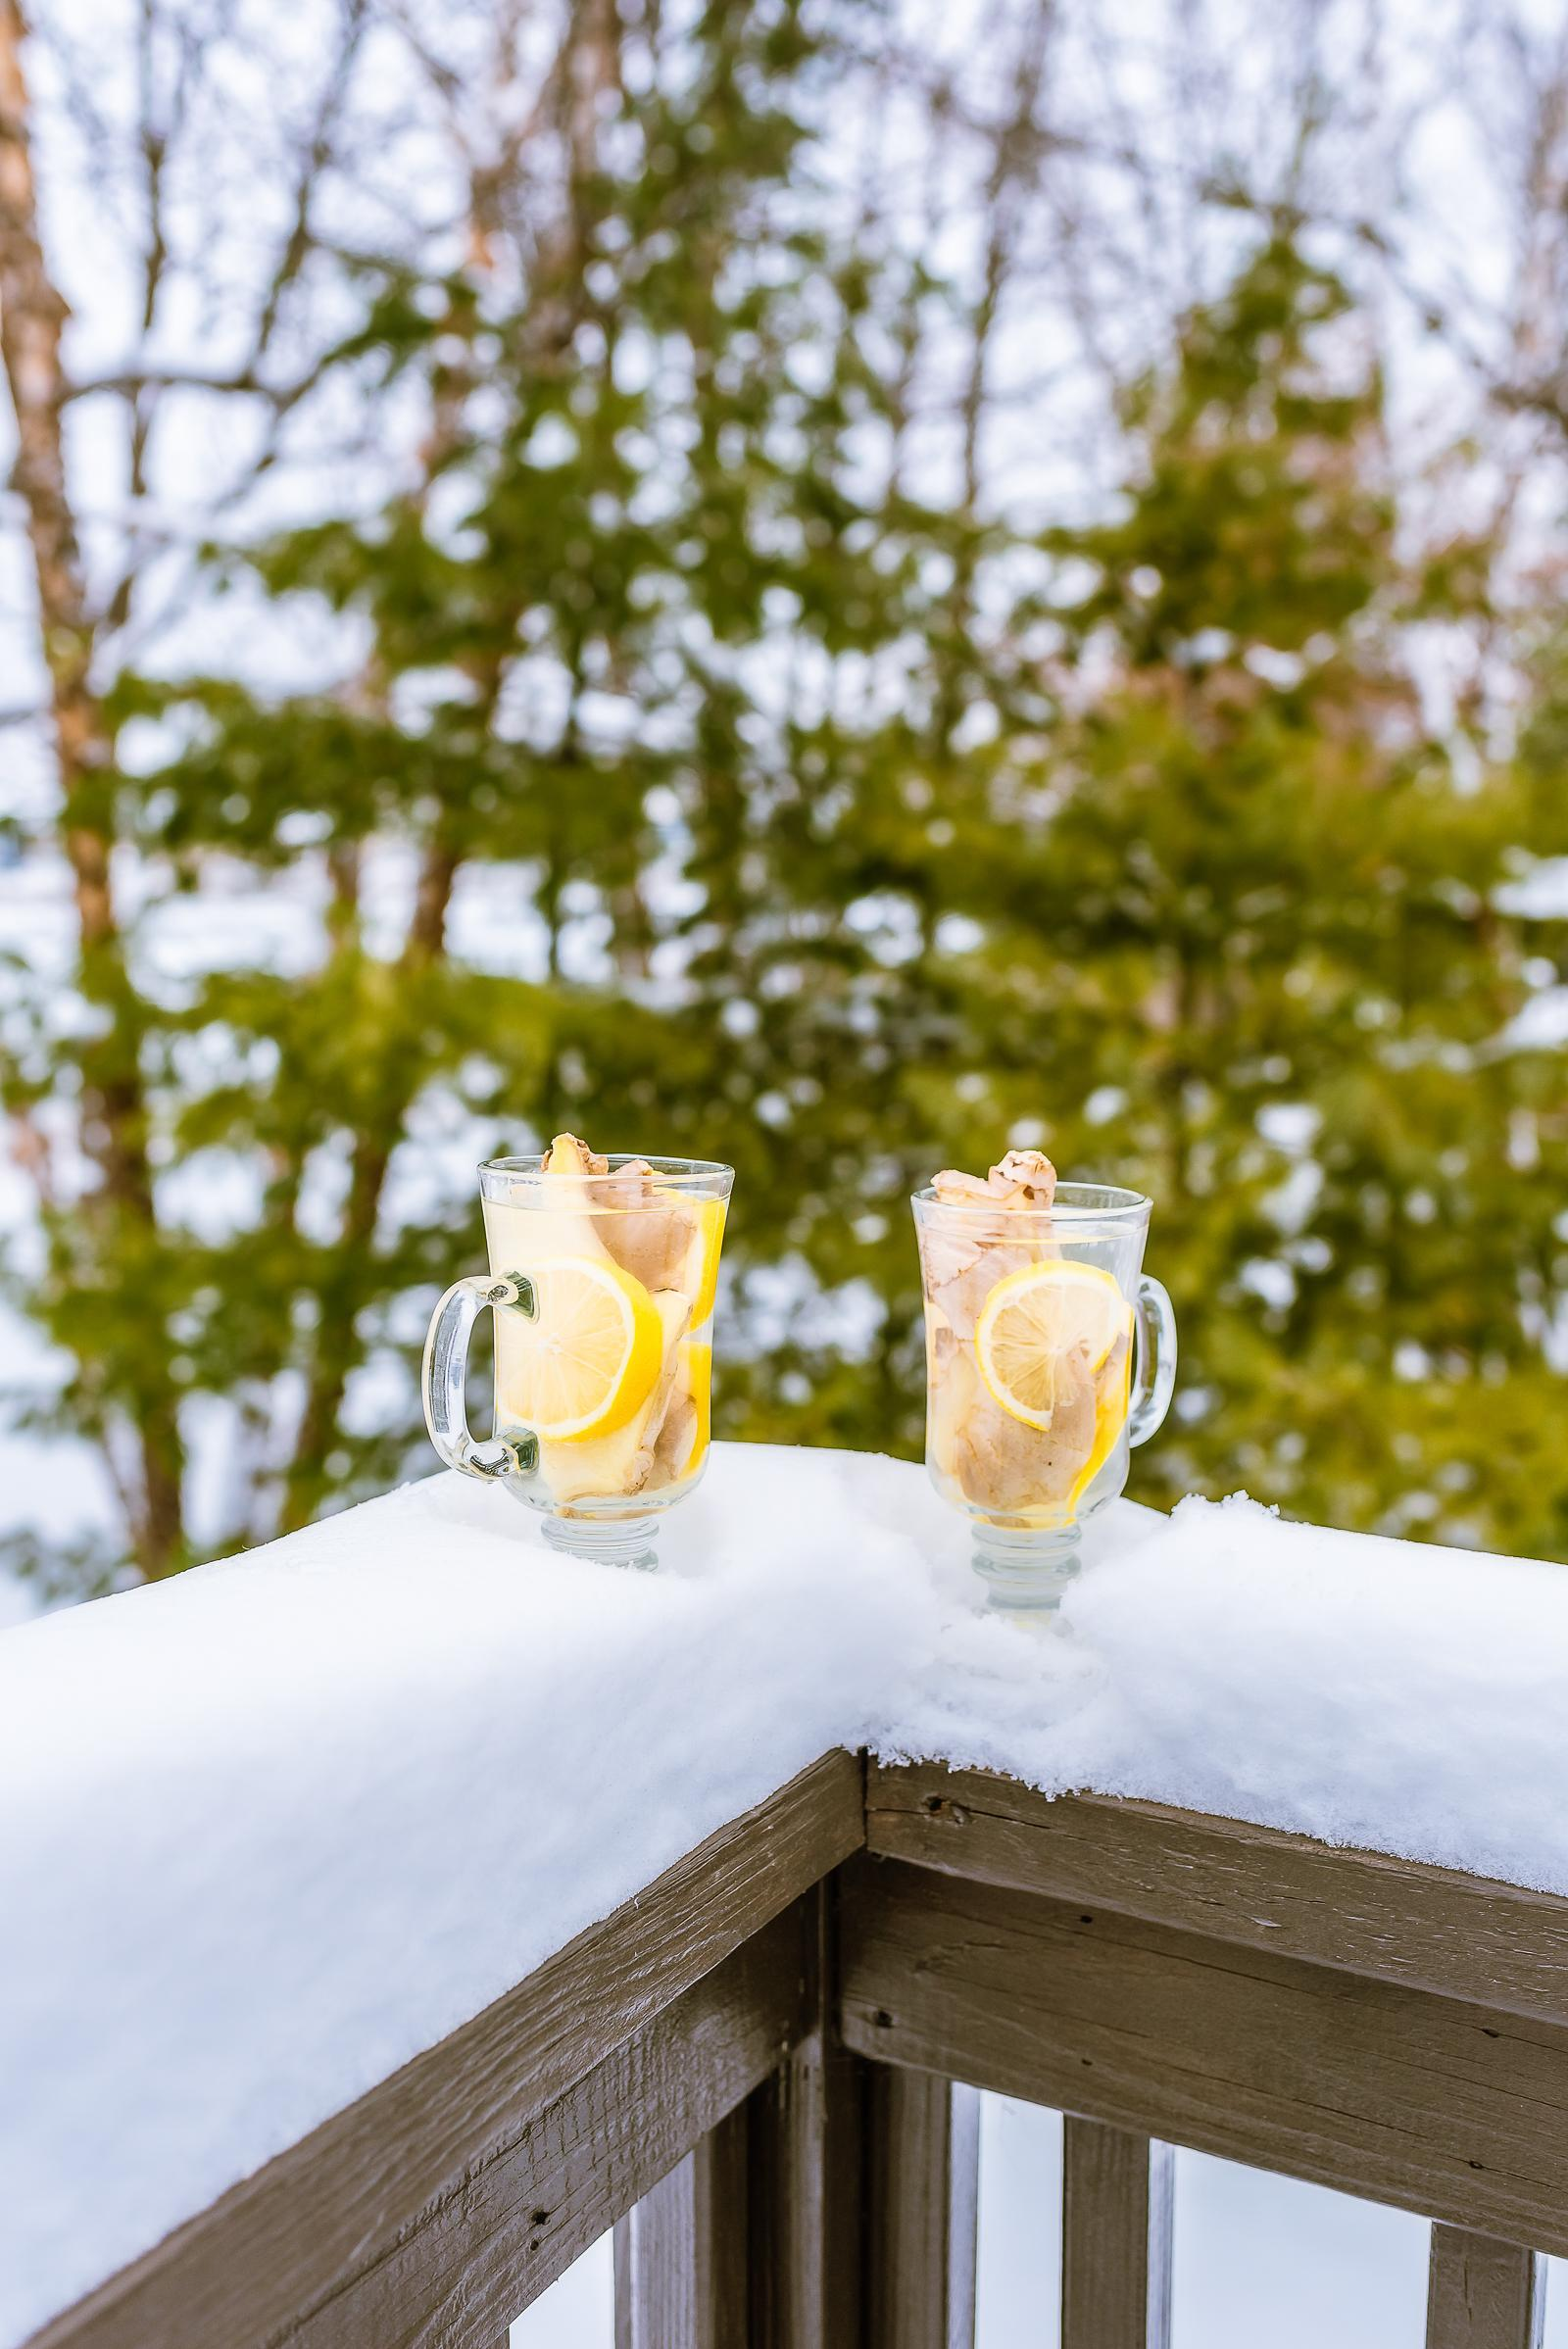 Lemon Ginger Winter Tonic Recipe